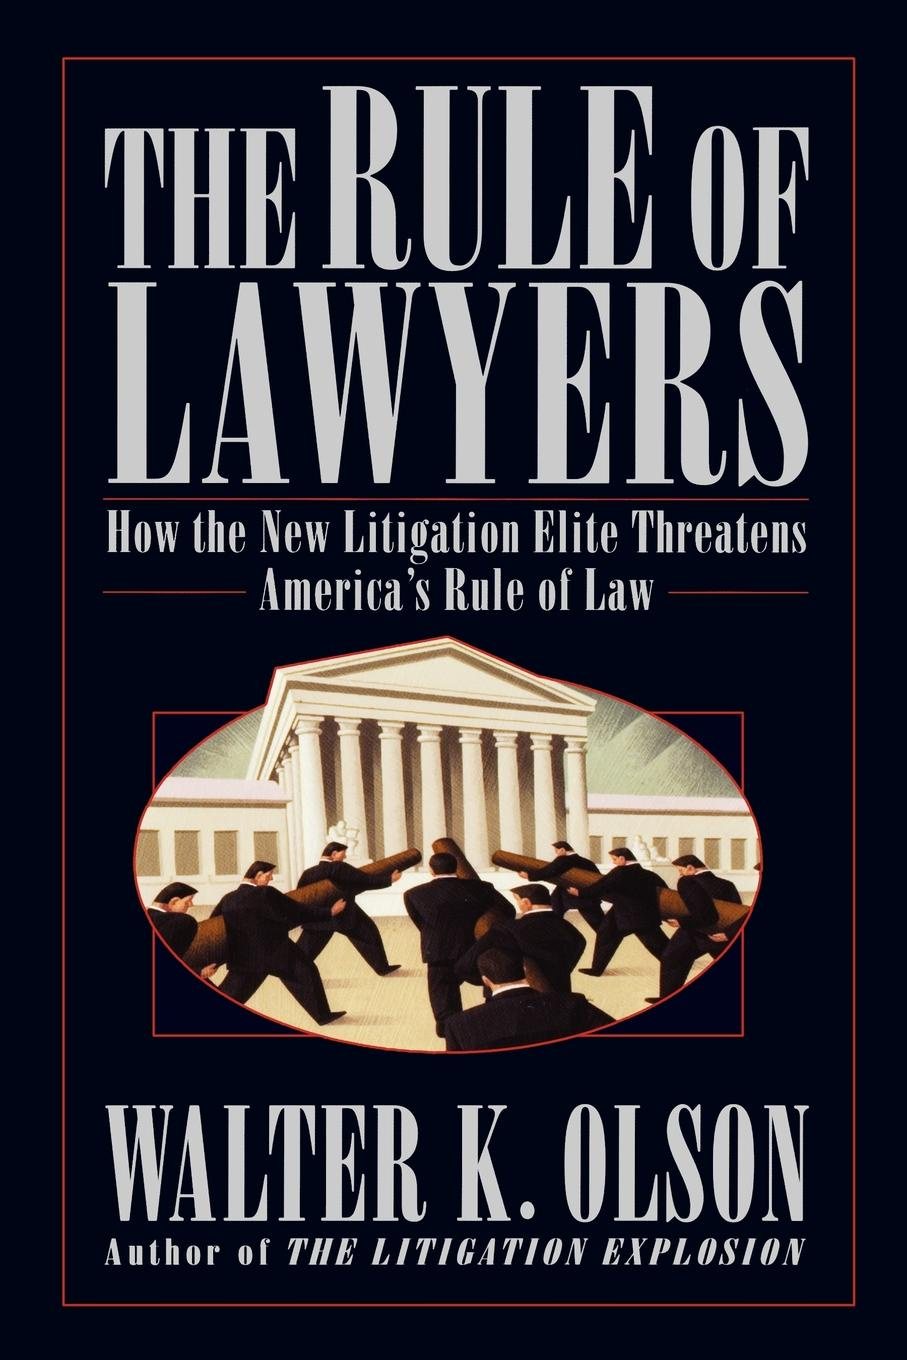 Walter K. Olson The Rule of Lawyers. How the New Litigation Elite Threatens America's Rule of Law in praise of litigation